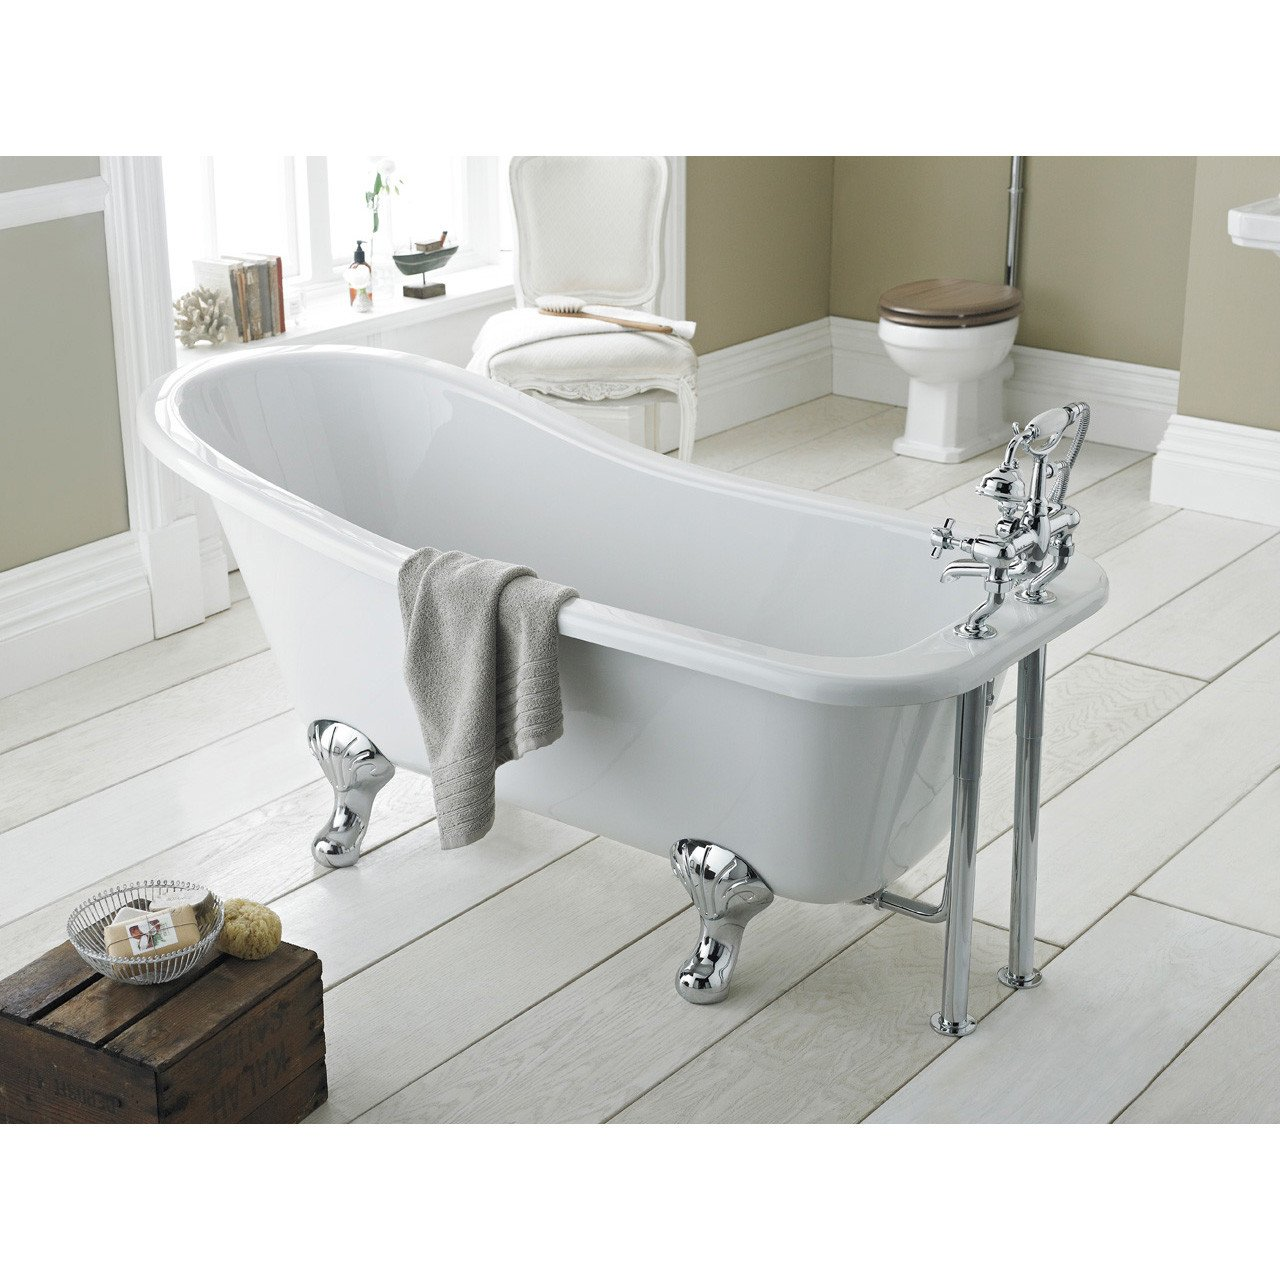 Premier White Kensington 1500 Single Ended Freestanding Bath with Deacon Legs - RL1490M1